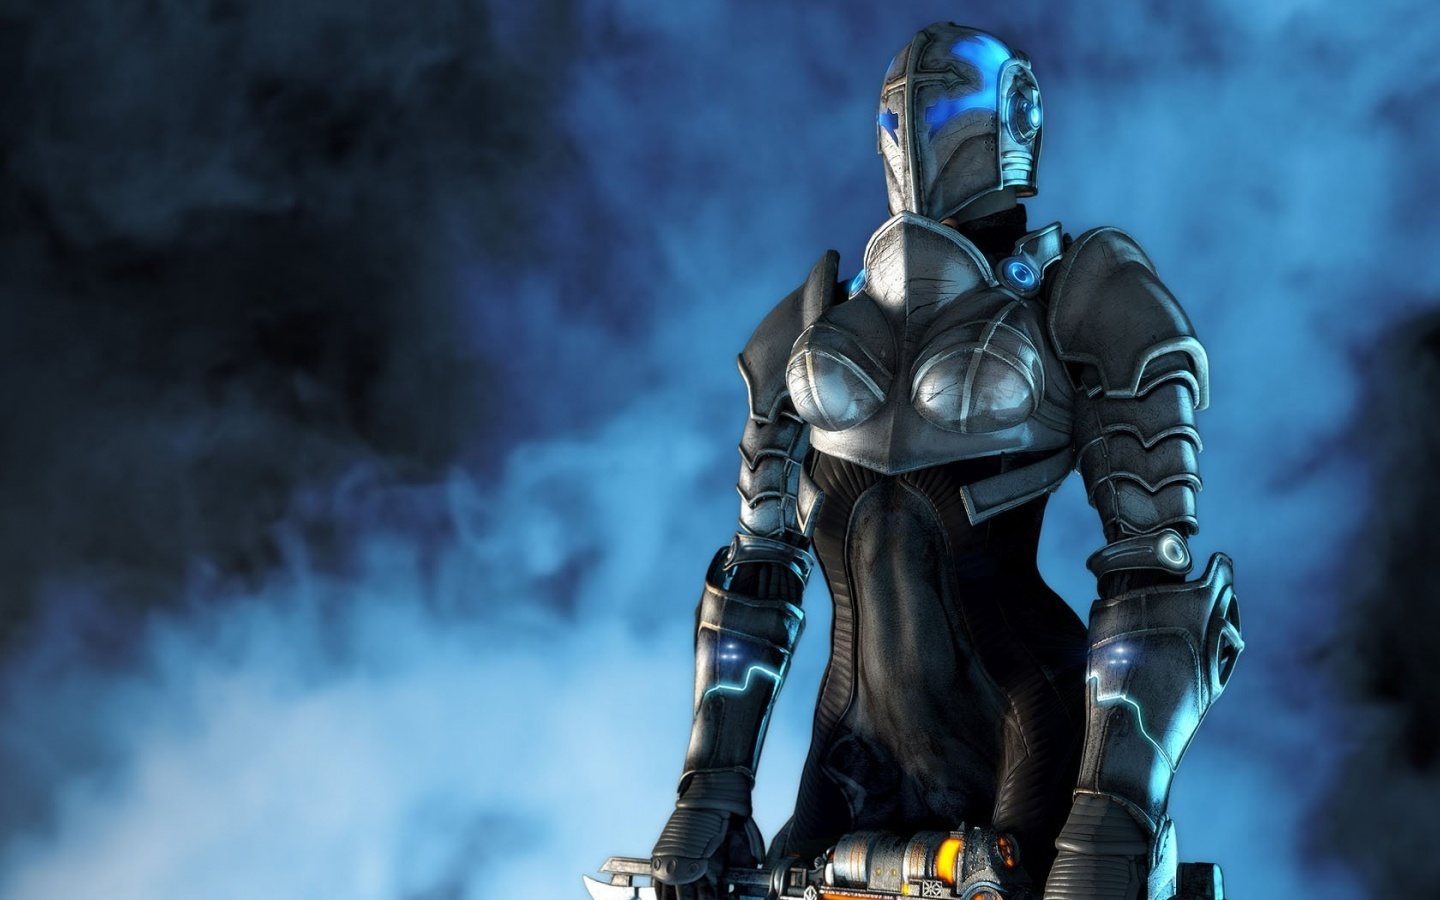 Hellgate London   Templar Knight 1440x900